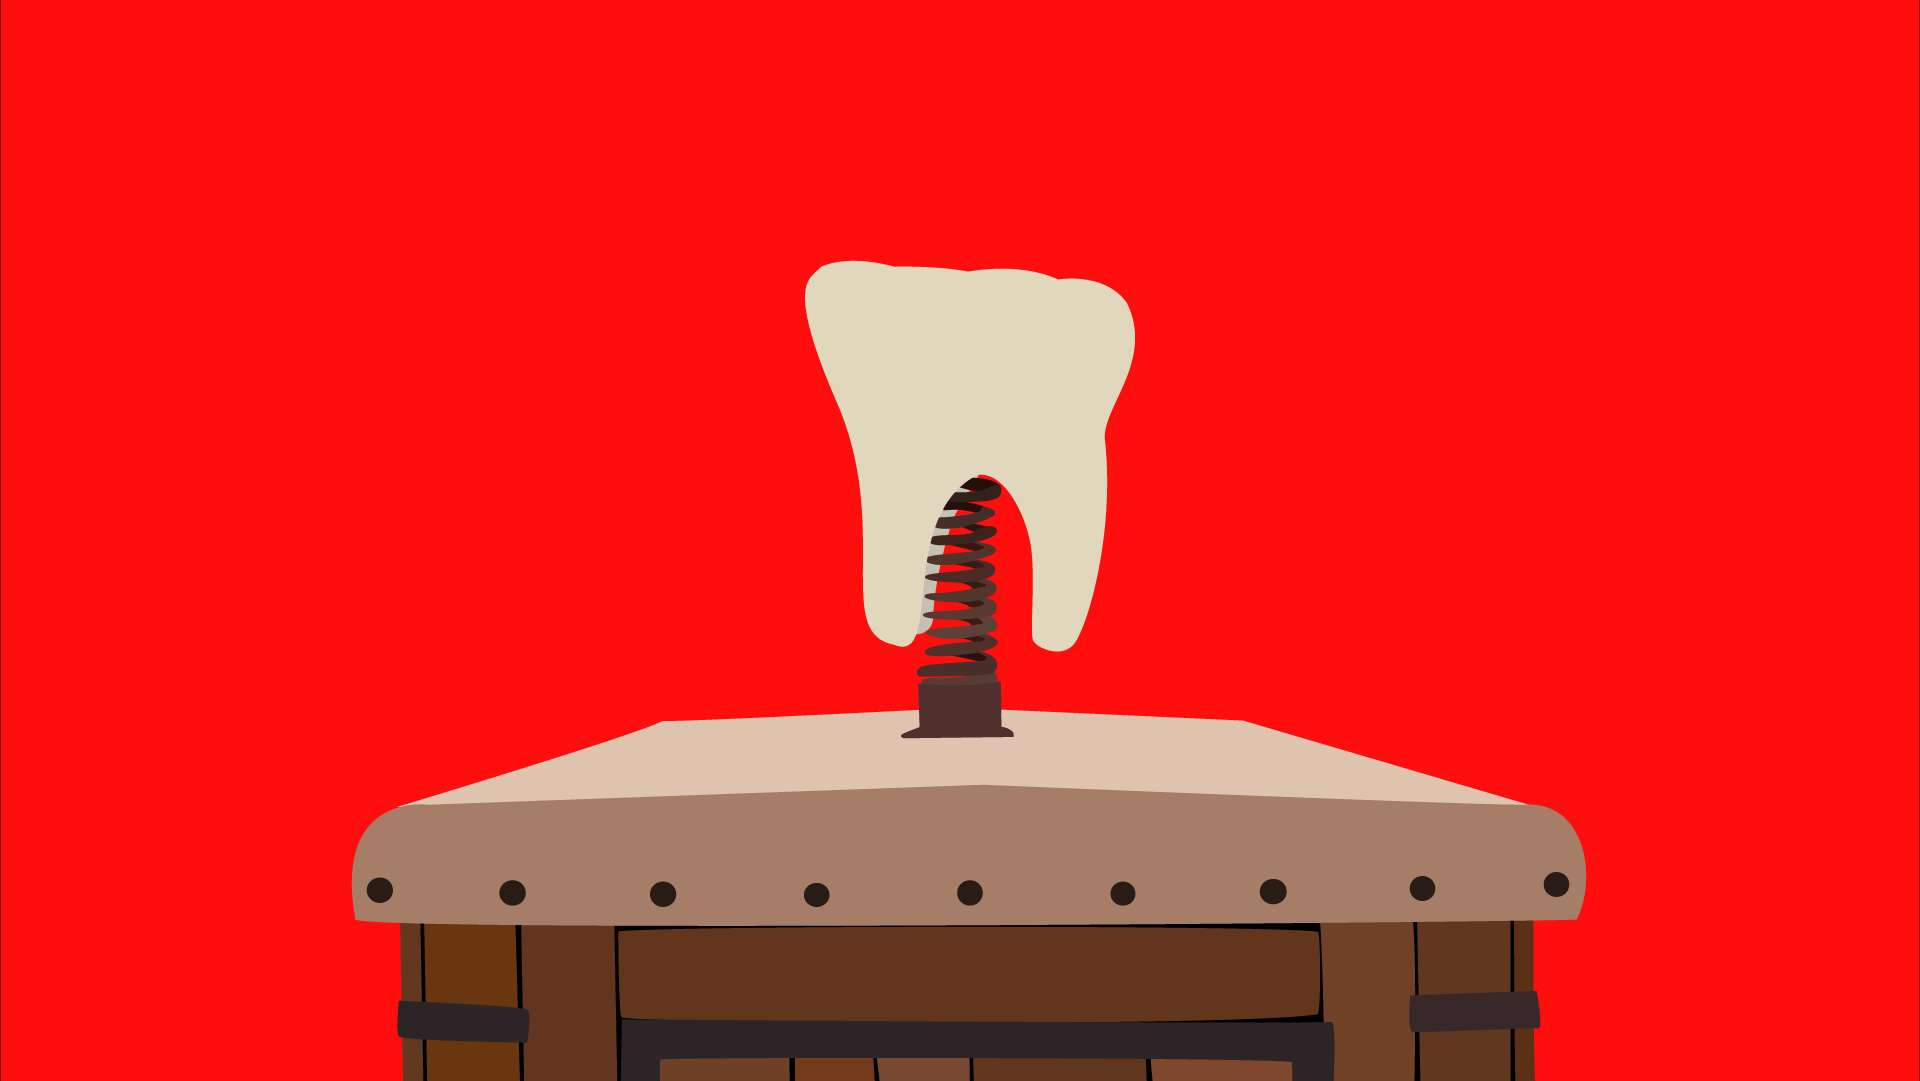 wallpaper tooth wagon simple minimalist wallpapers movies teeth 1920x1081